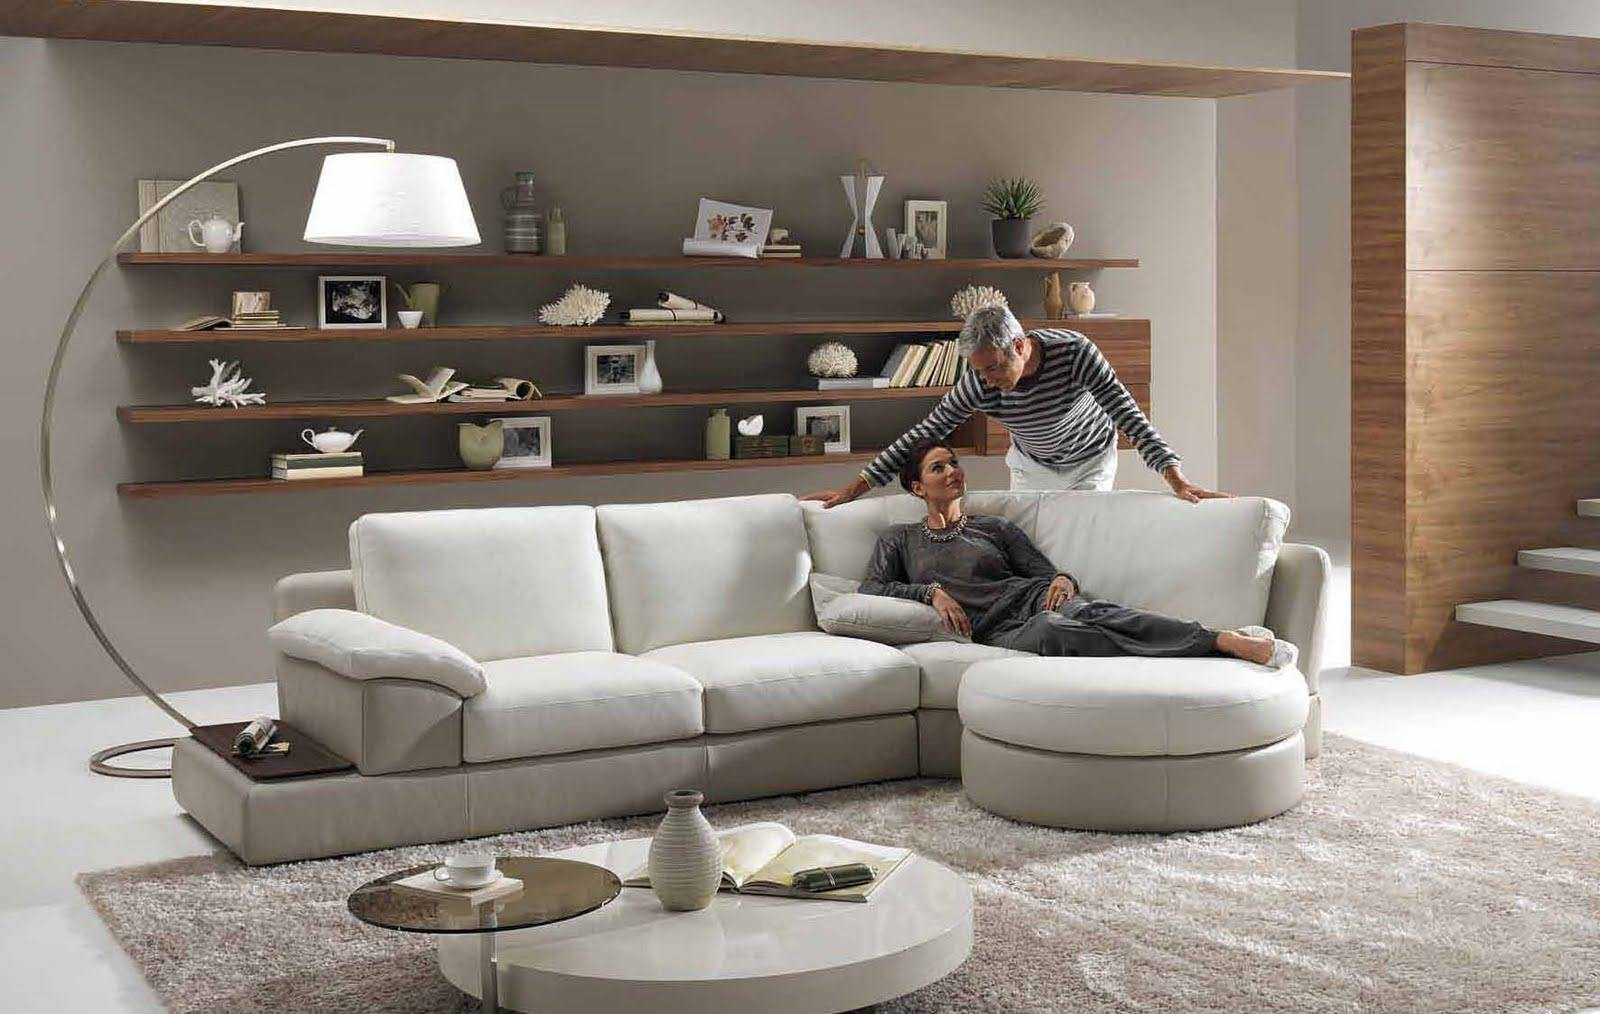 Modern Living Room Design Ideas Narrow Dining Tables For Small Elegant Es Do Your Feel Overcrowded And Uncomfortable